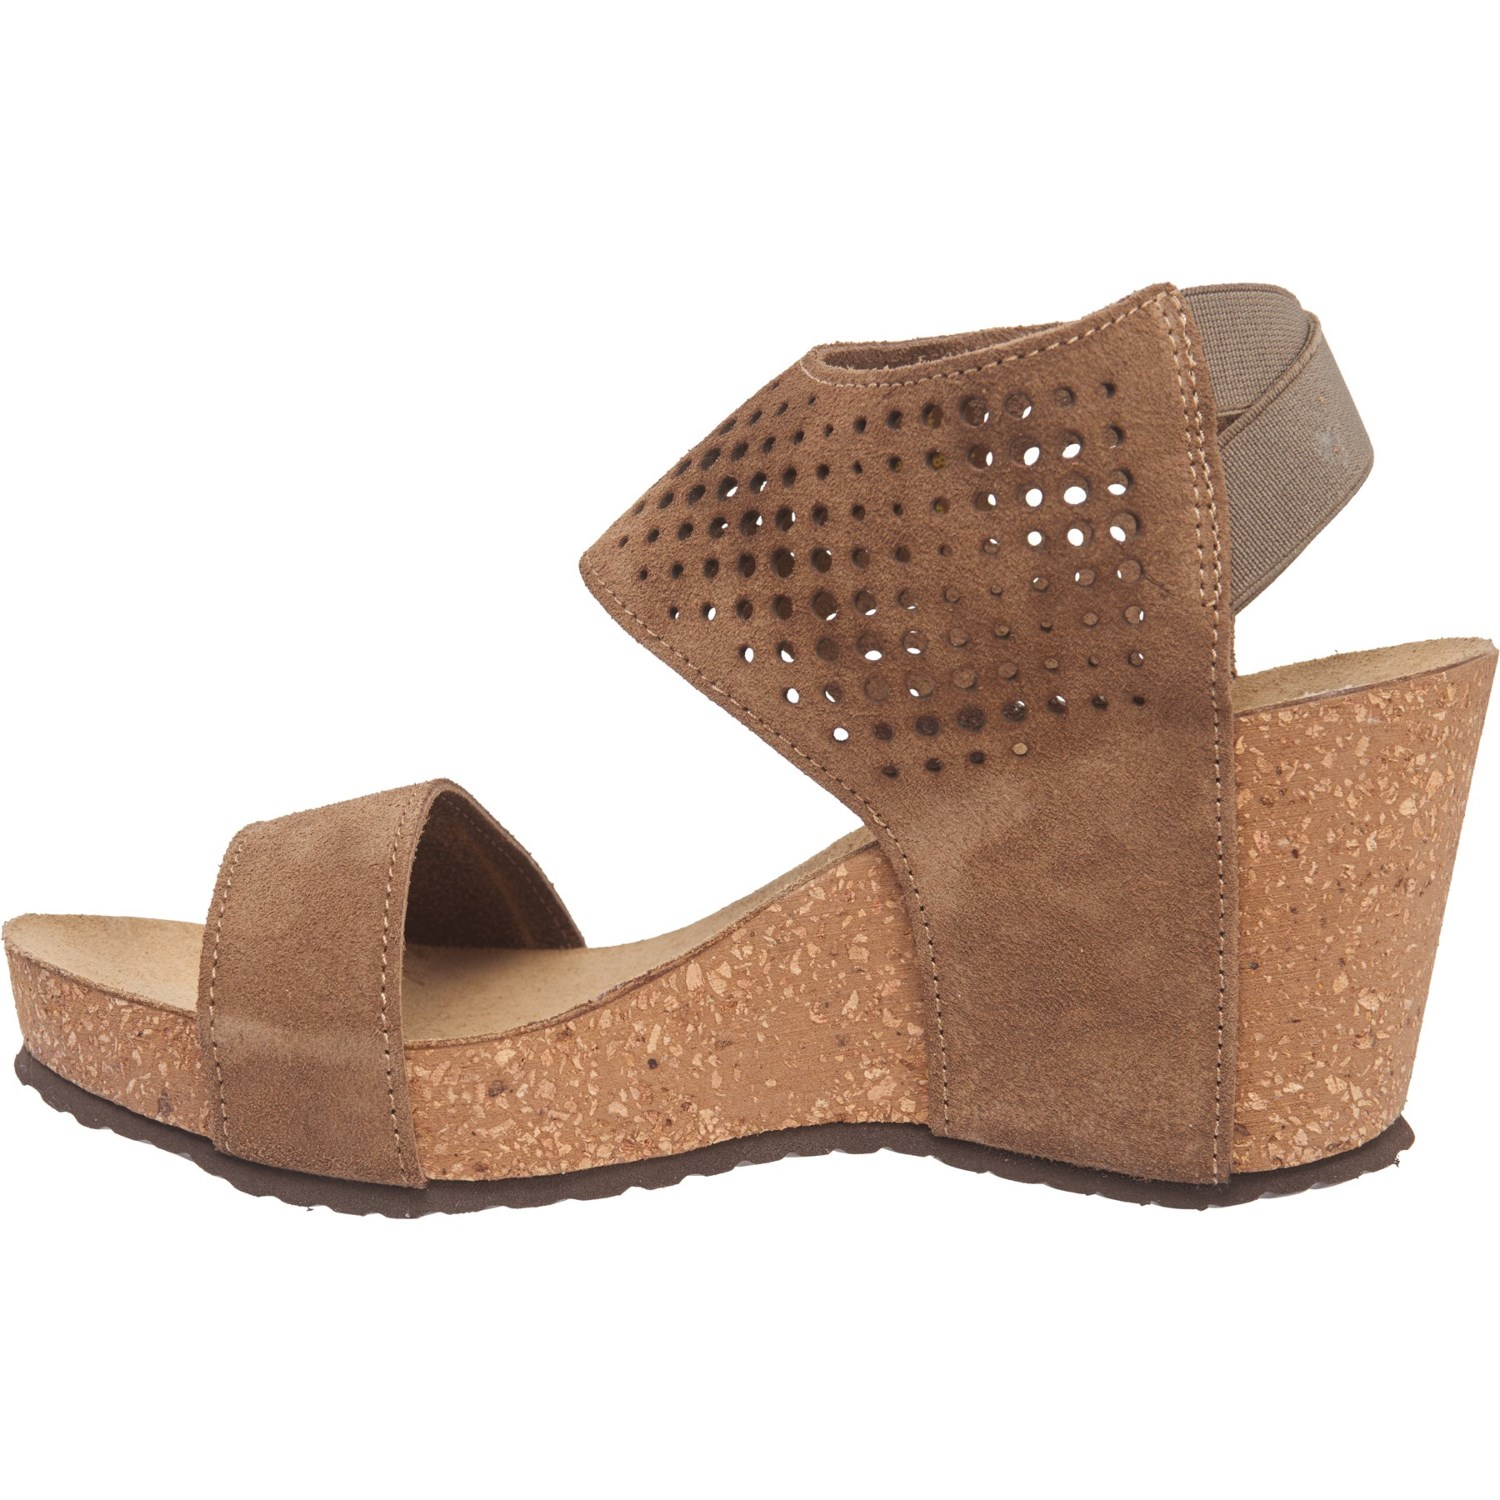 9676d954228f A. GIANNETTI Made in Italy Laser Ankle Wedge Sandals - Suede (For Women)